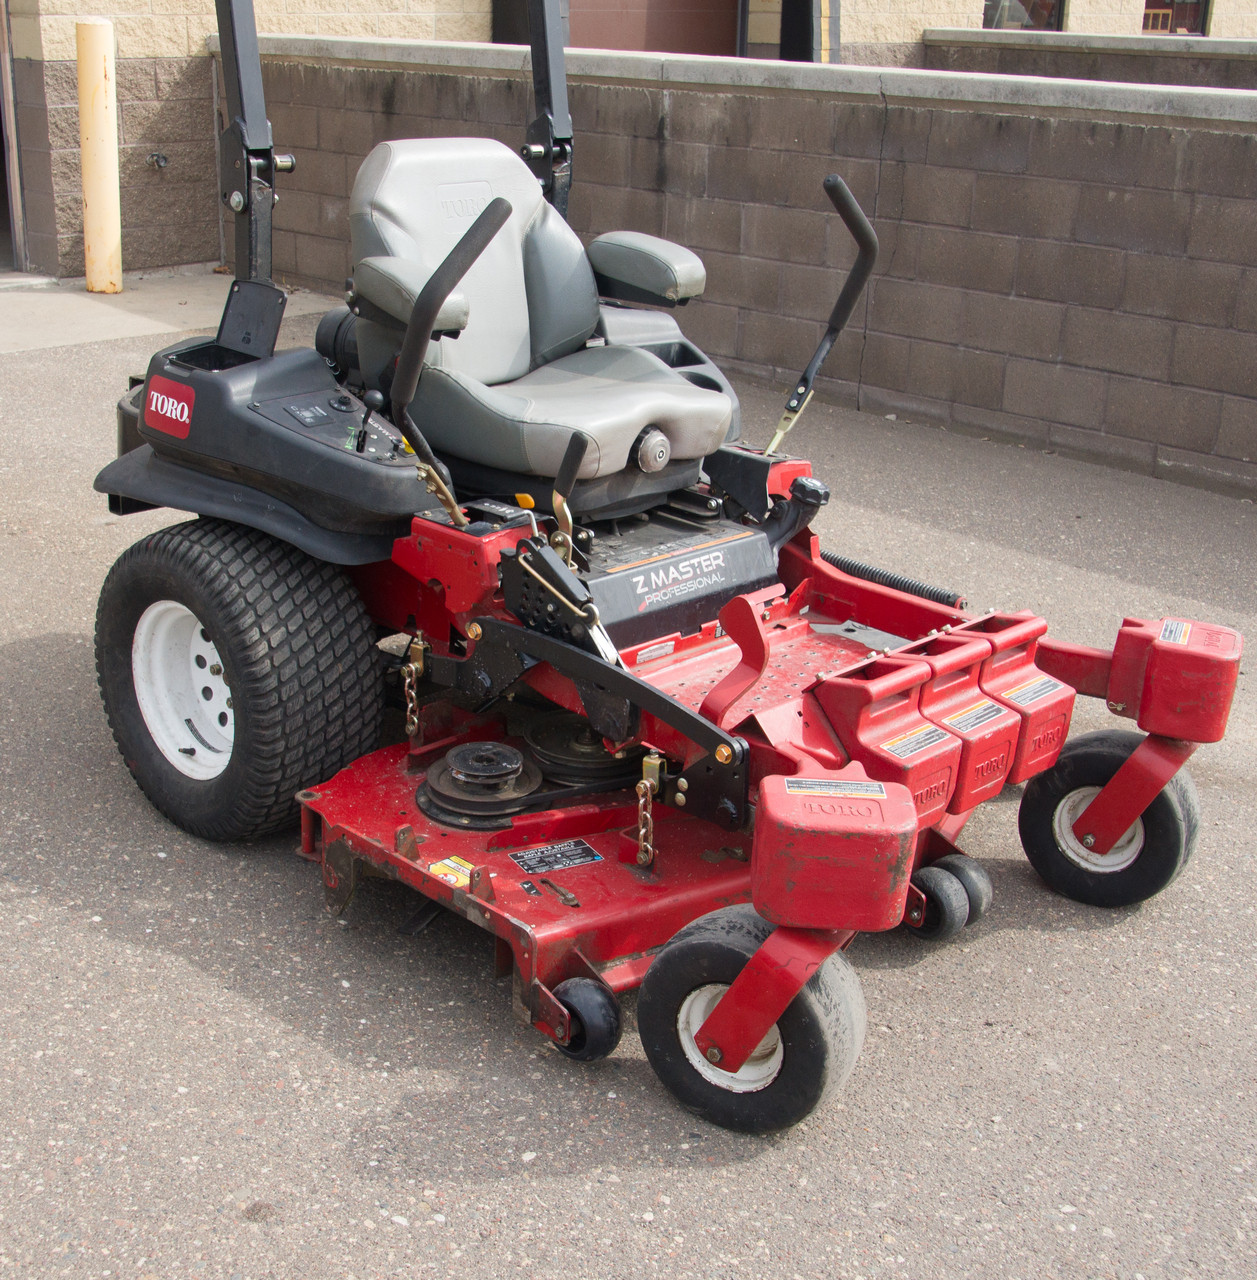 Lawn Striping kit for Toro Z-Master 5000 Series 2013 & 6000 Series 2014  with 60